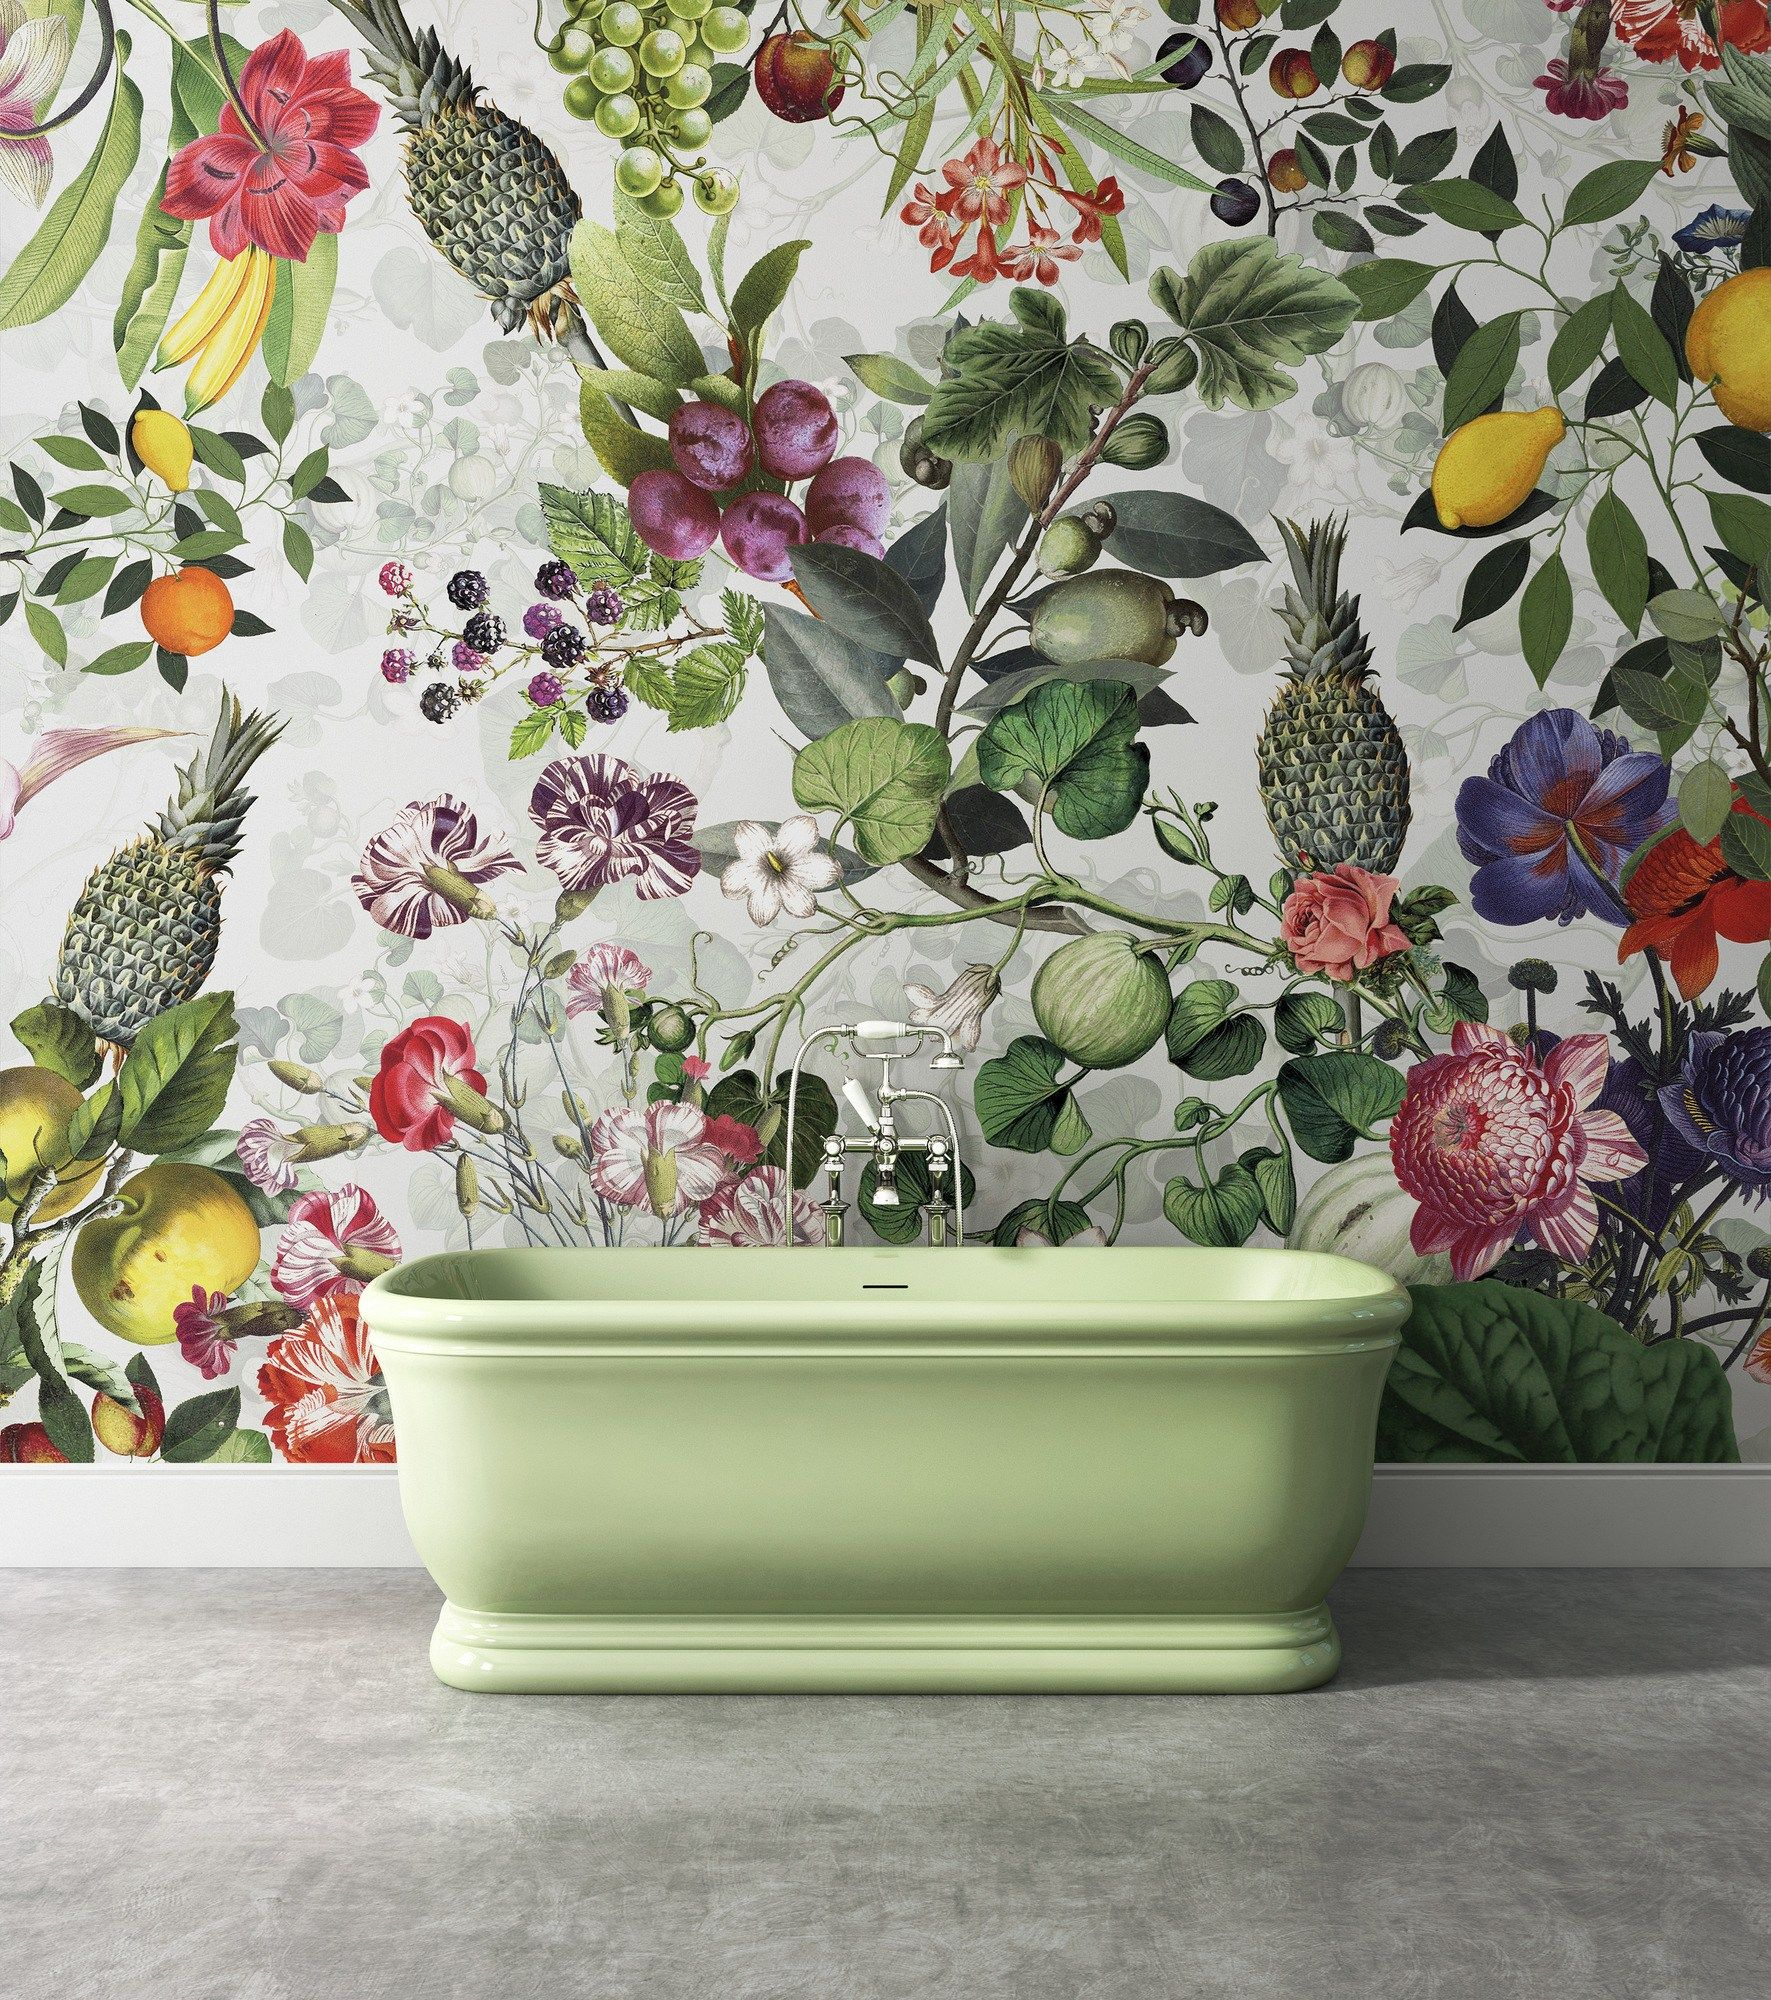 Washable Wallpaper With Fl Pattern Botanica Devon I Would Use This In A Kitchen Rather Than Bath